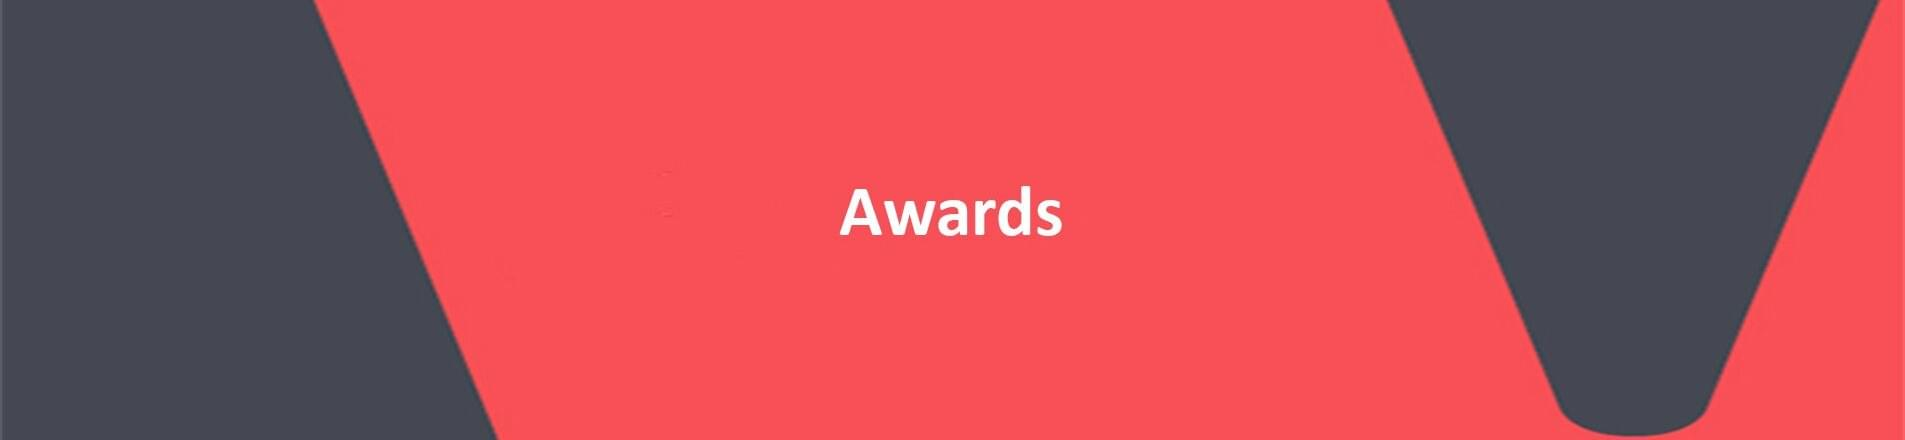 Red background with white text overlaid, spelling Awards.